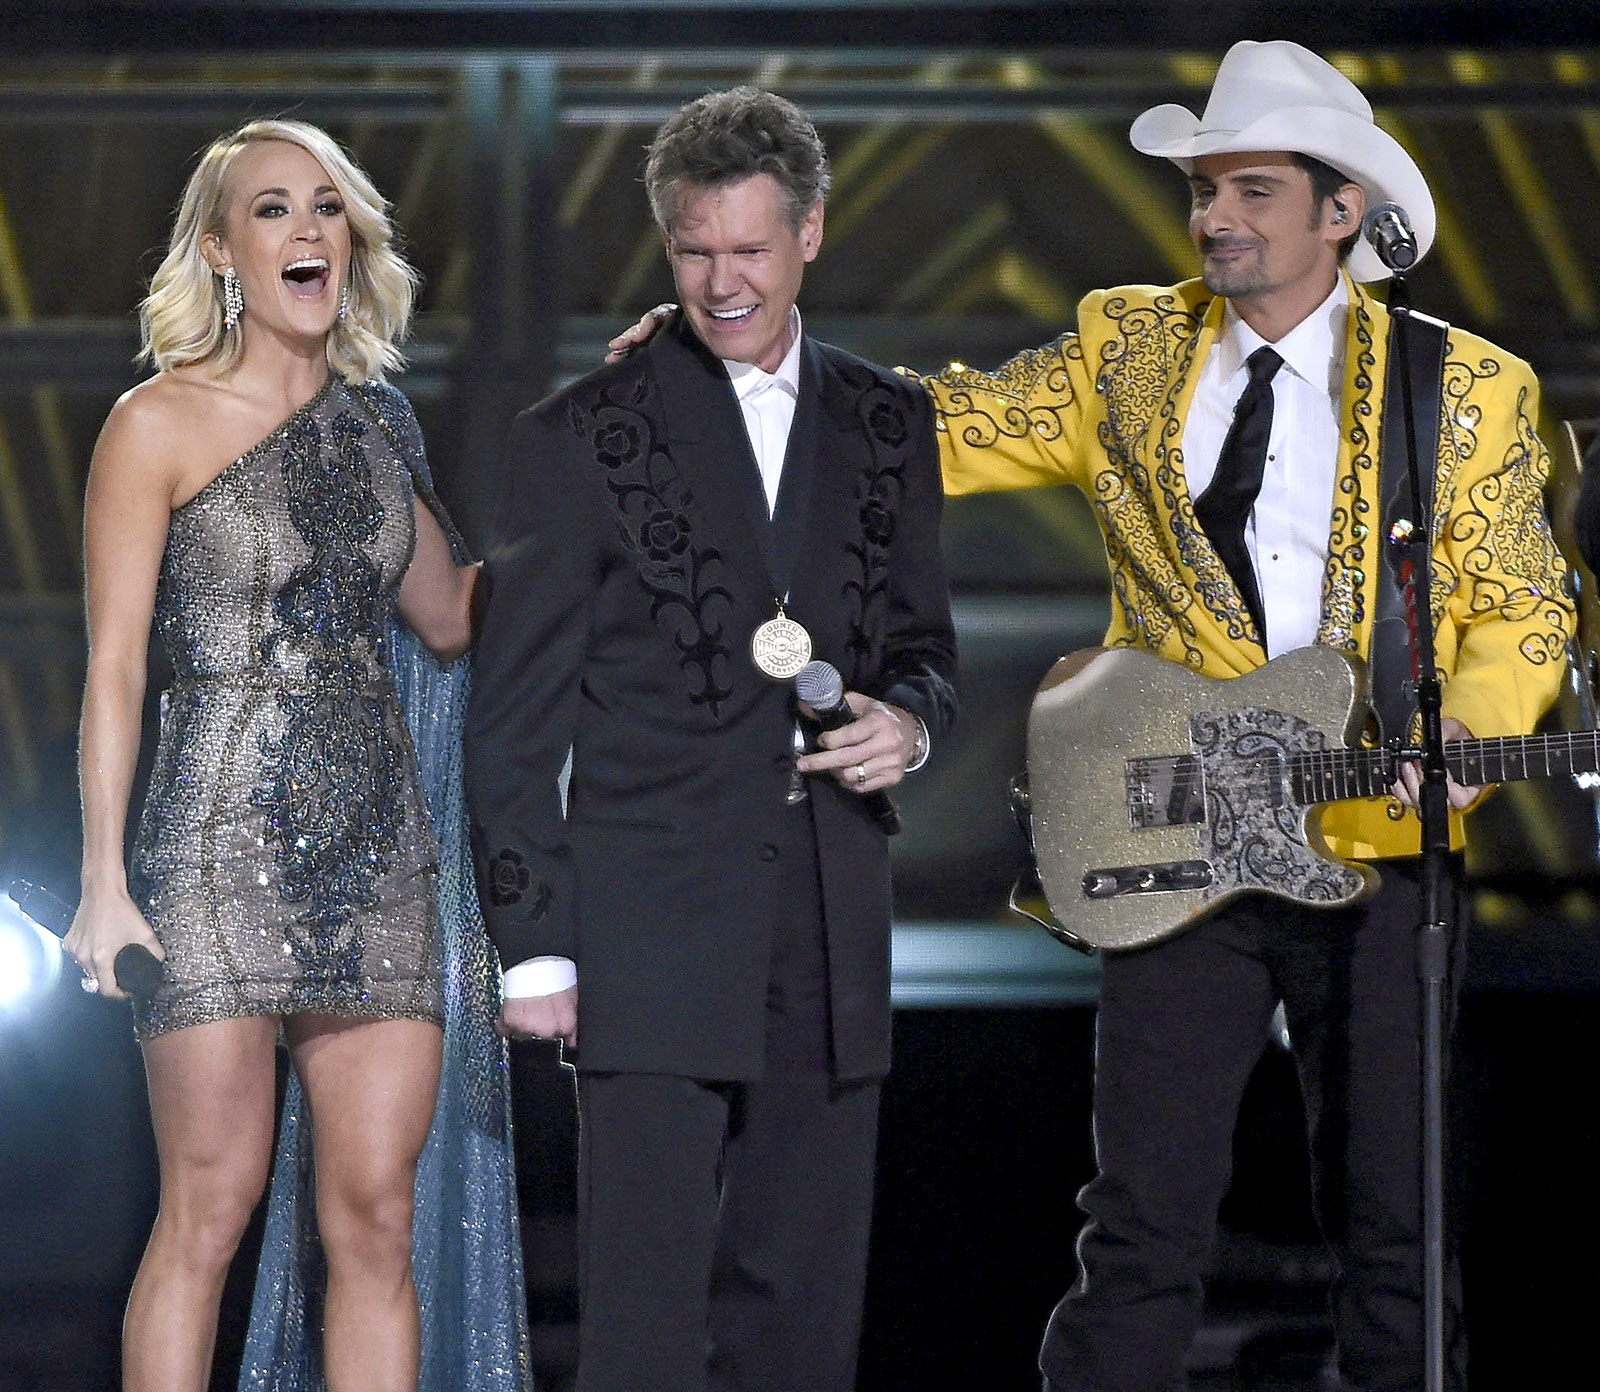 Randy Travis and Carrie Underwood and Brad Paisley